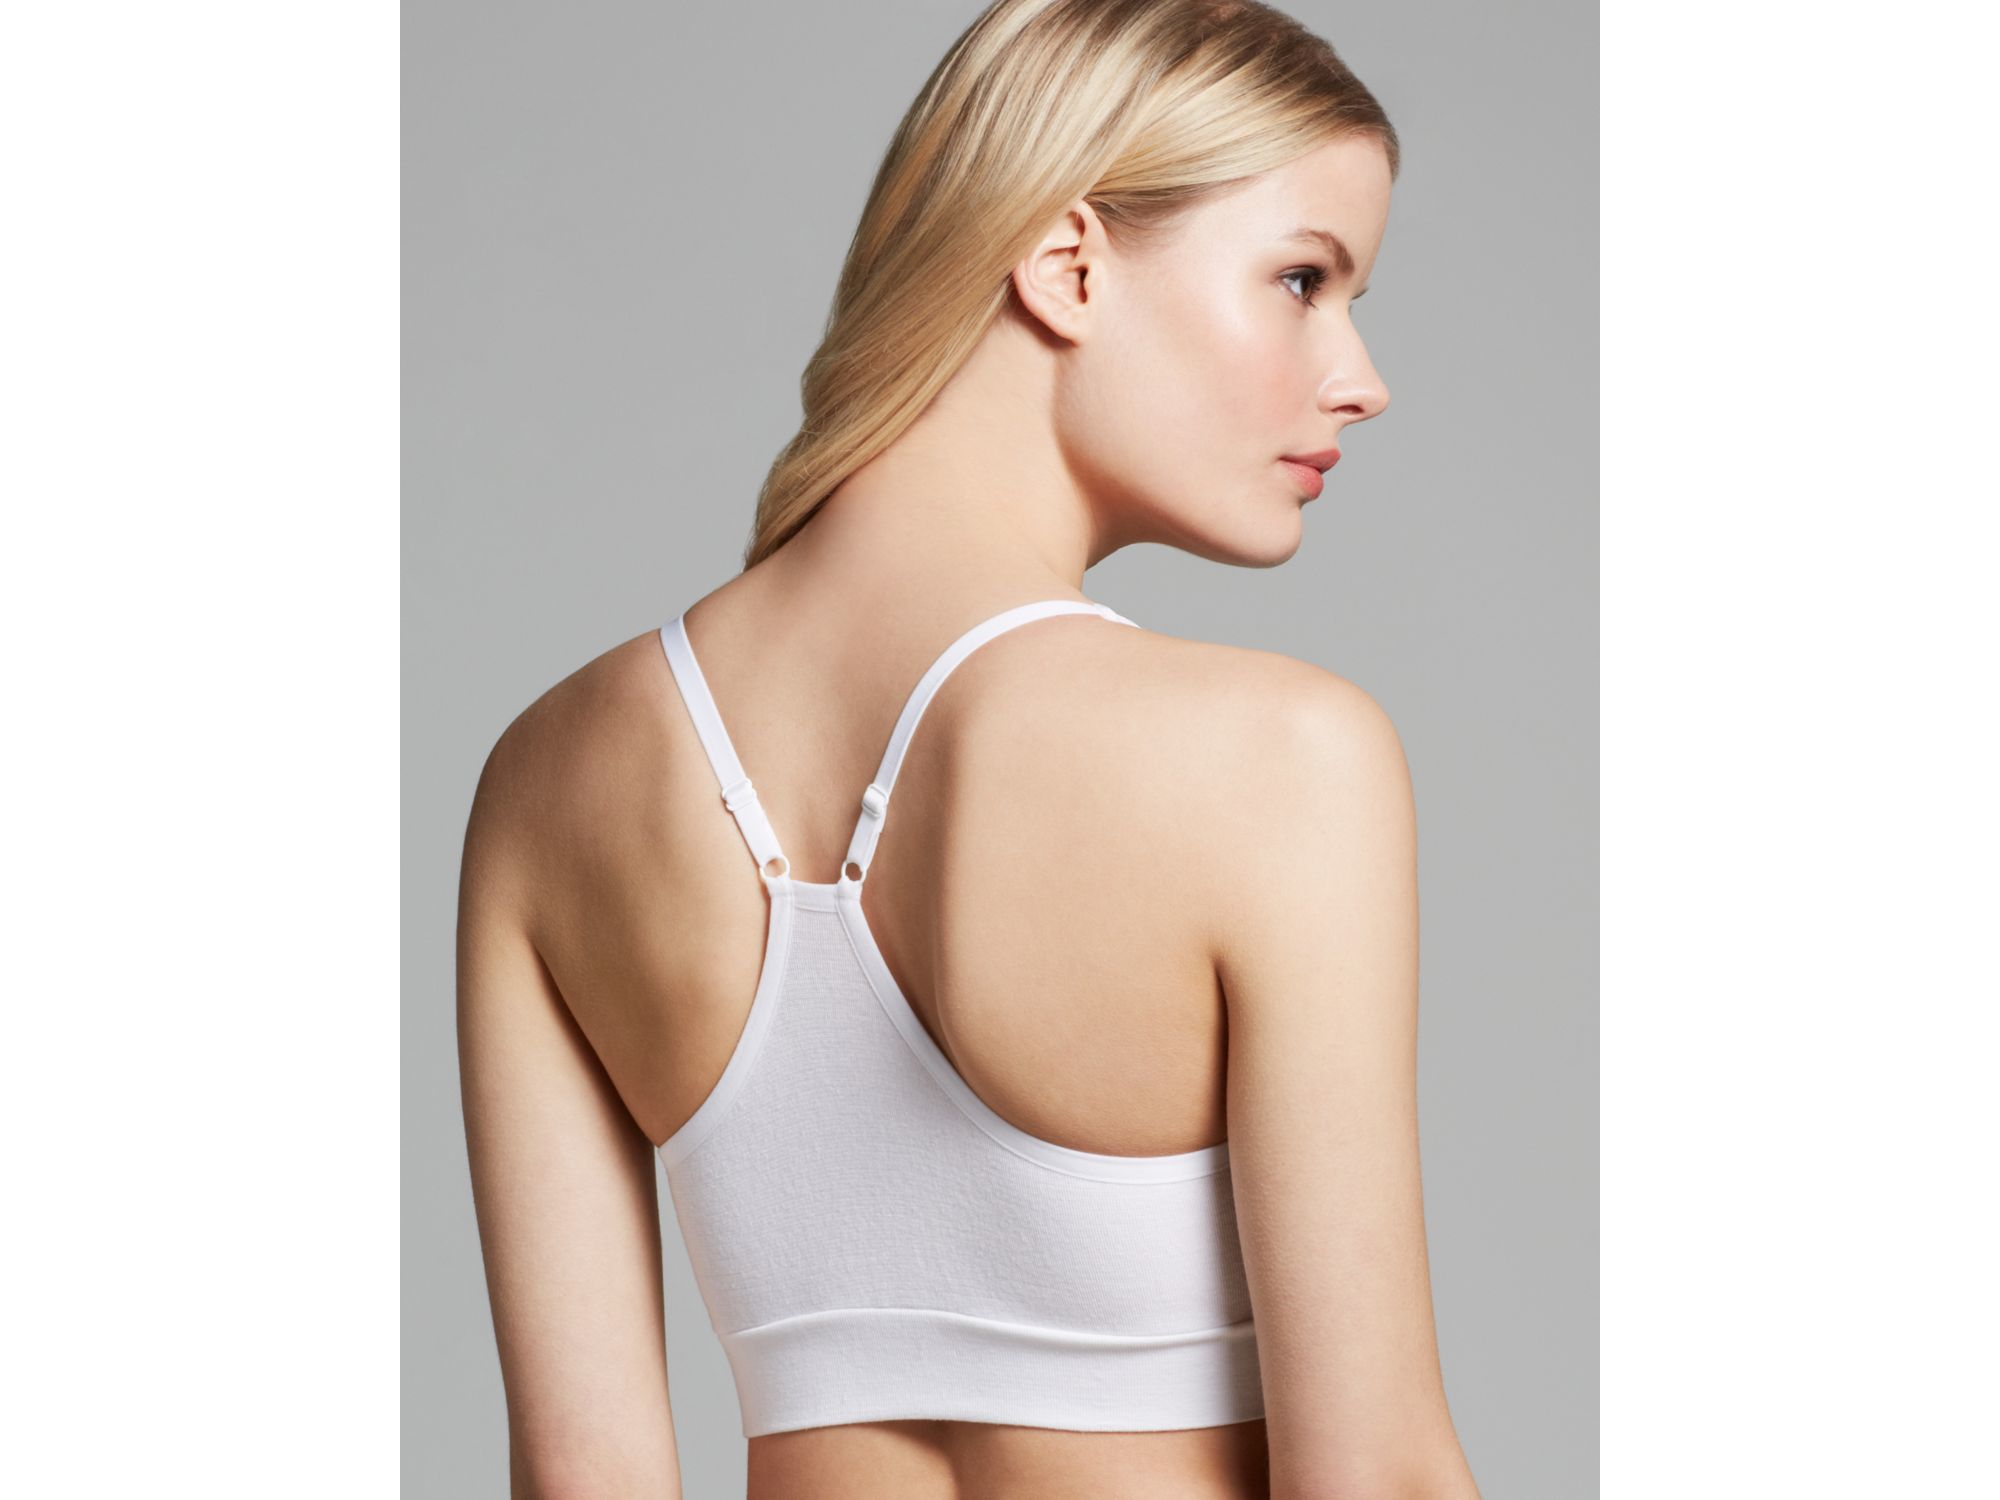 af97d85f8d388 Lyst - Yummie By Heather Thomson Bra - Mallory Seamless Racerback ...